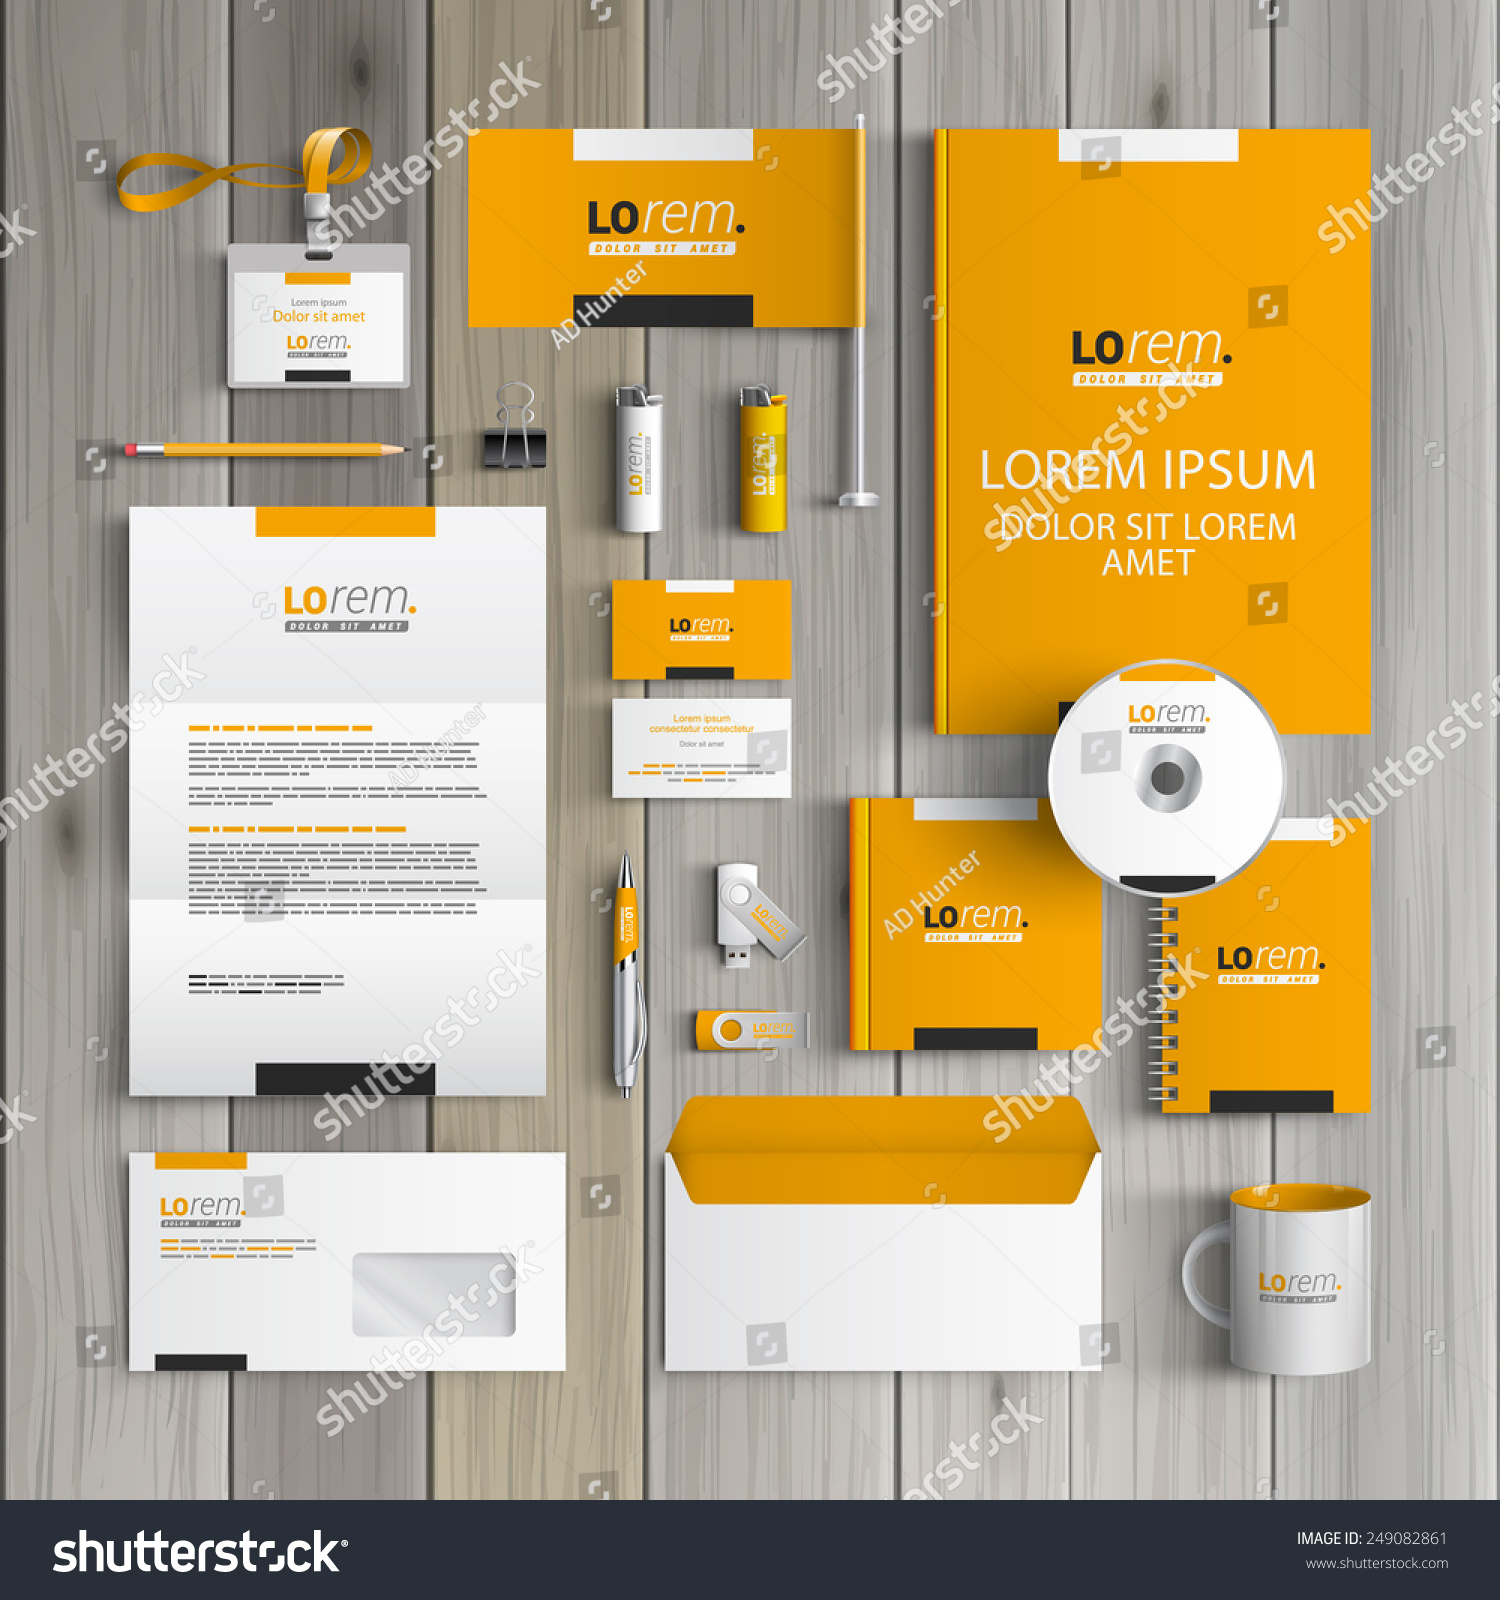 Blank Stationery And Corporate Identity Template Consist: Yellow Classic Corporate Identity Template Design With